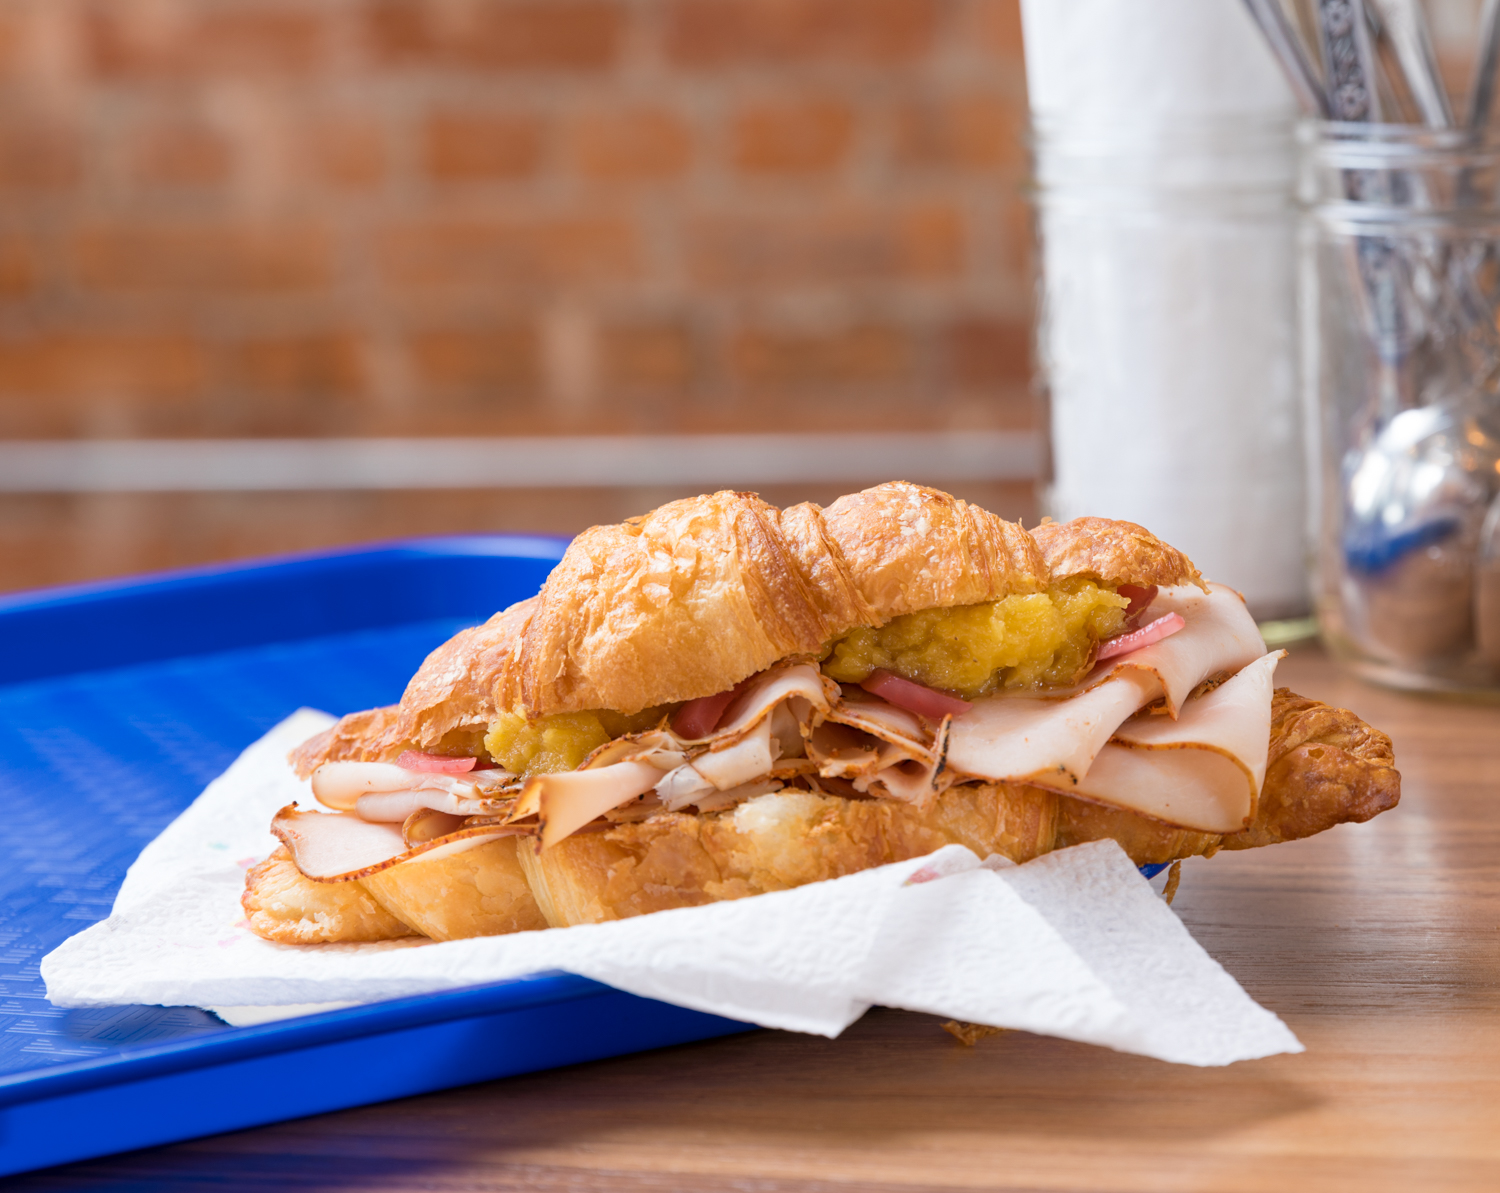 Turkey sandwich with pickled onions on croissant with squash mash{ }/ Image: Marlene Rounds // Published: 3.12.19